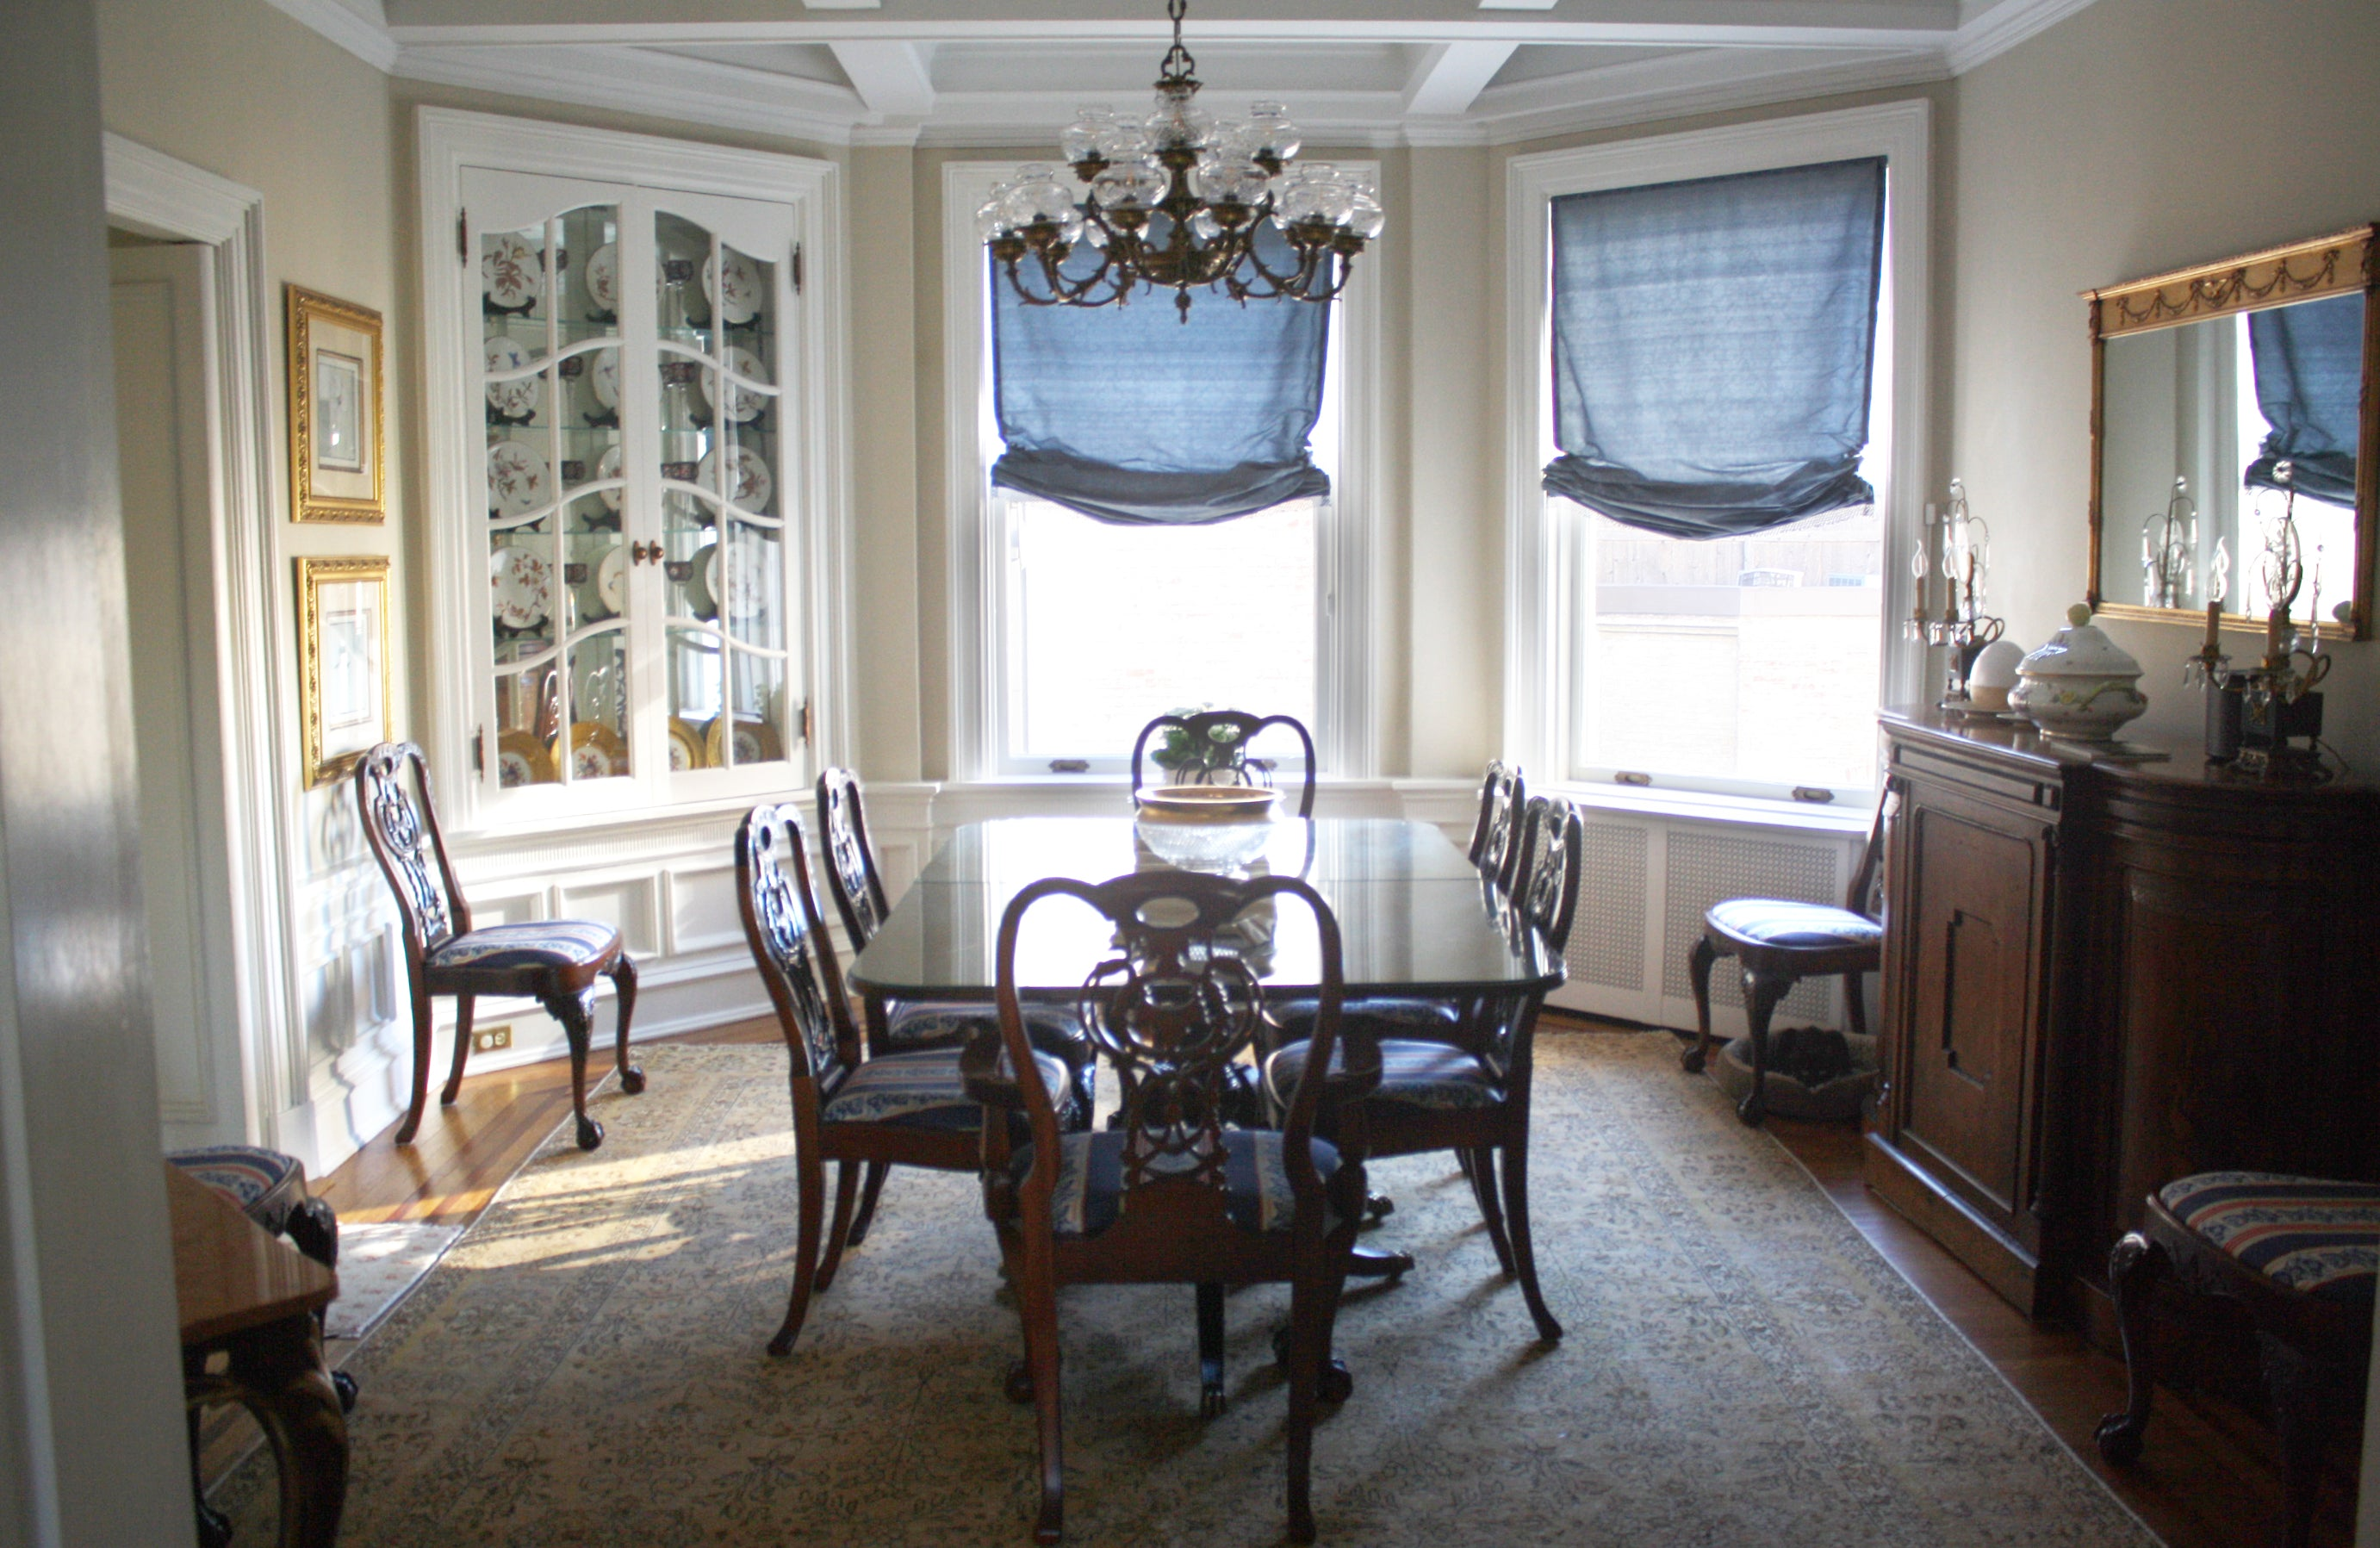 Dining room with persian rug